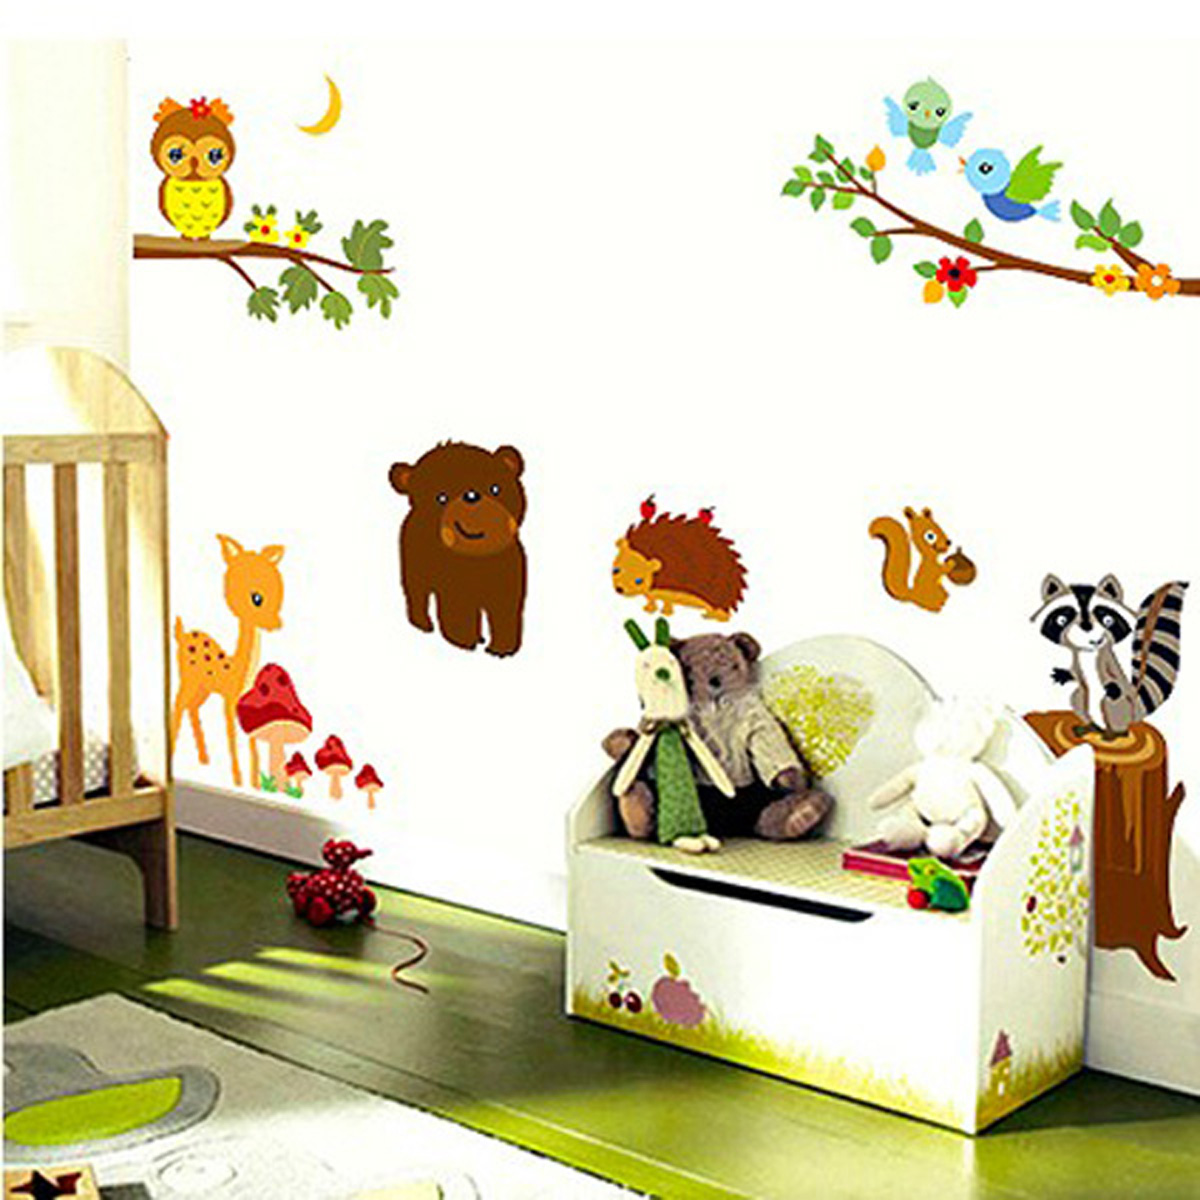 Http Ebay Com Itm Animal Tree Jungle Car Removable Vinyl Wall Decal Stickers Kids Room Home Decor 311401555574